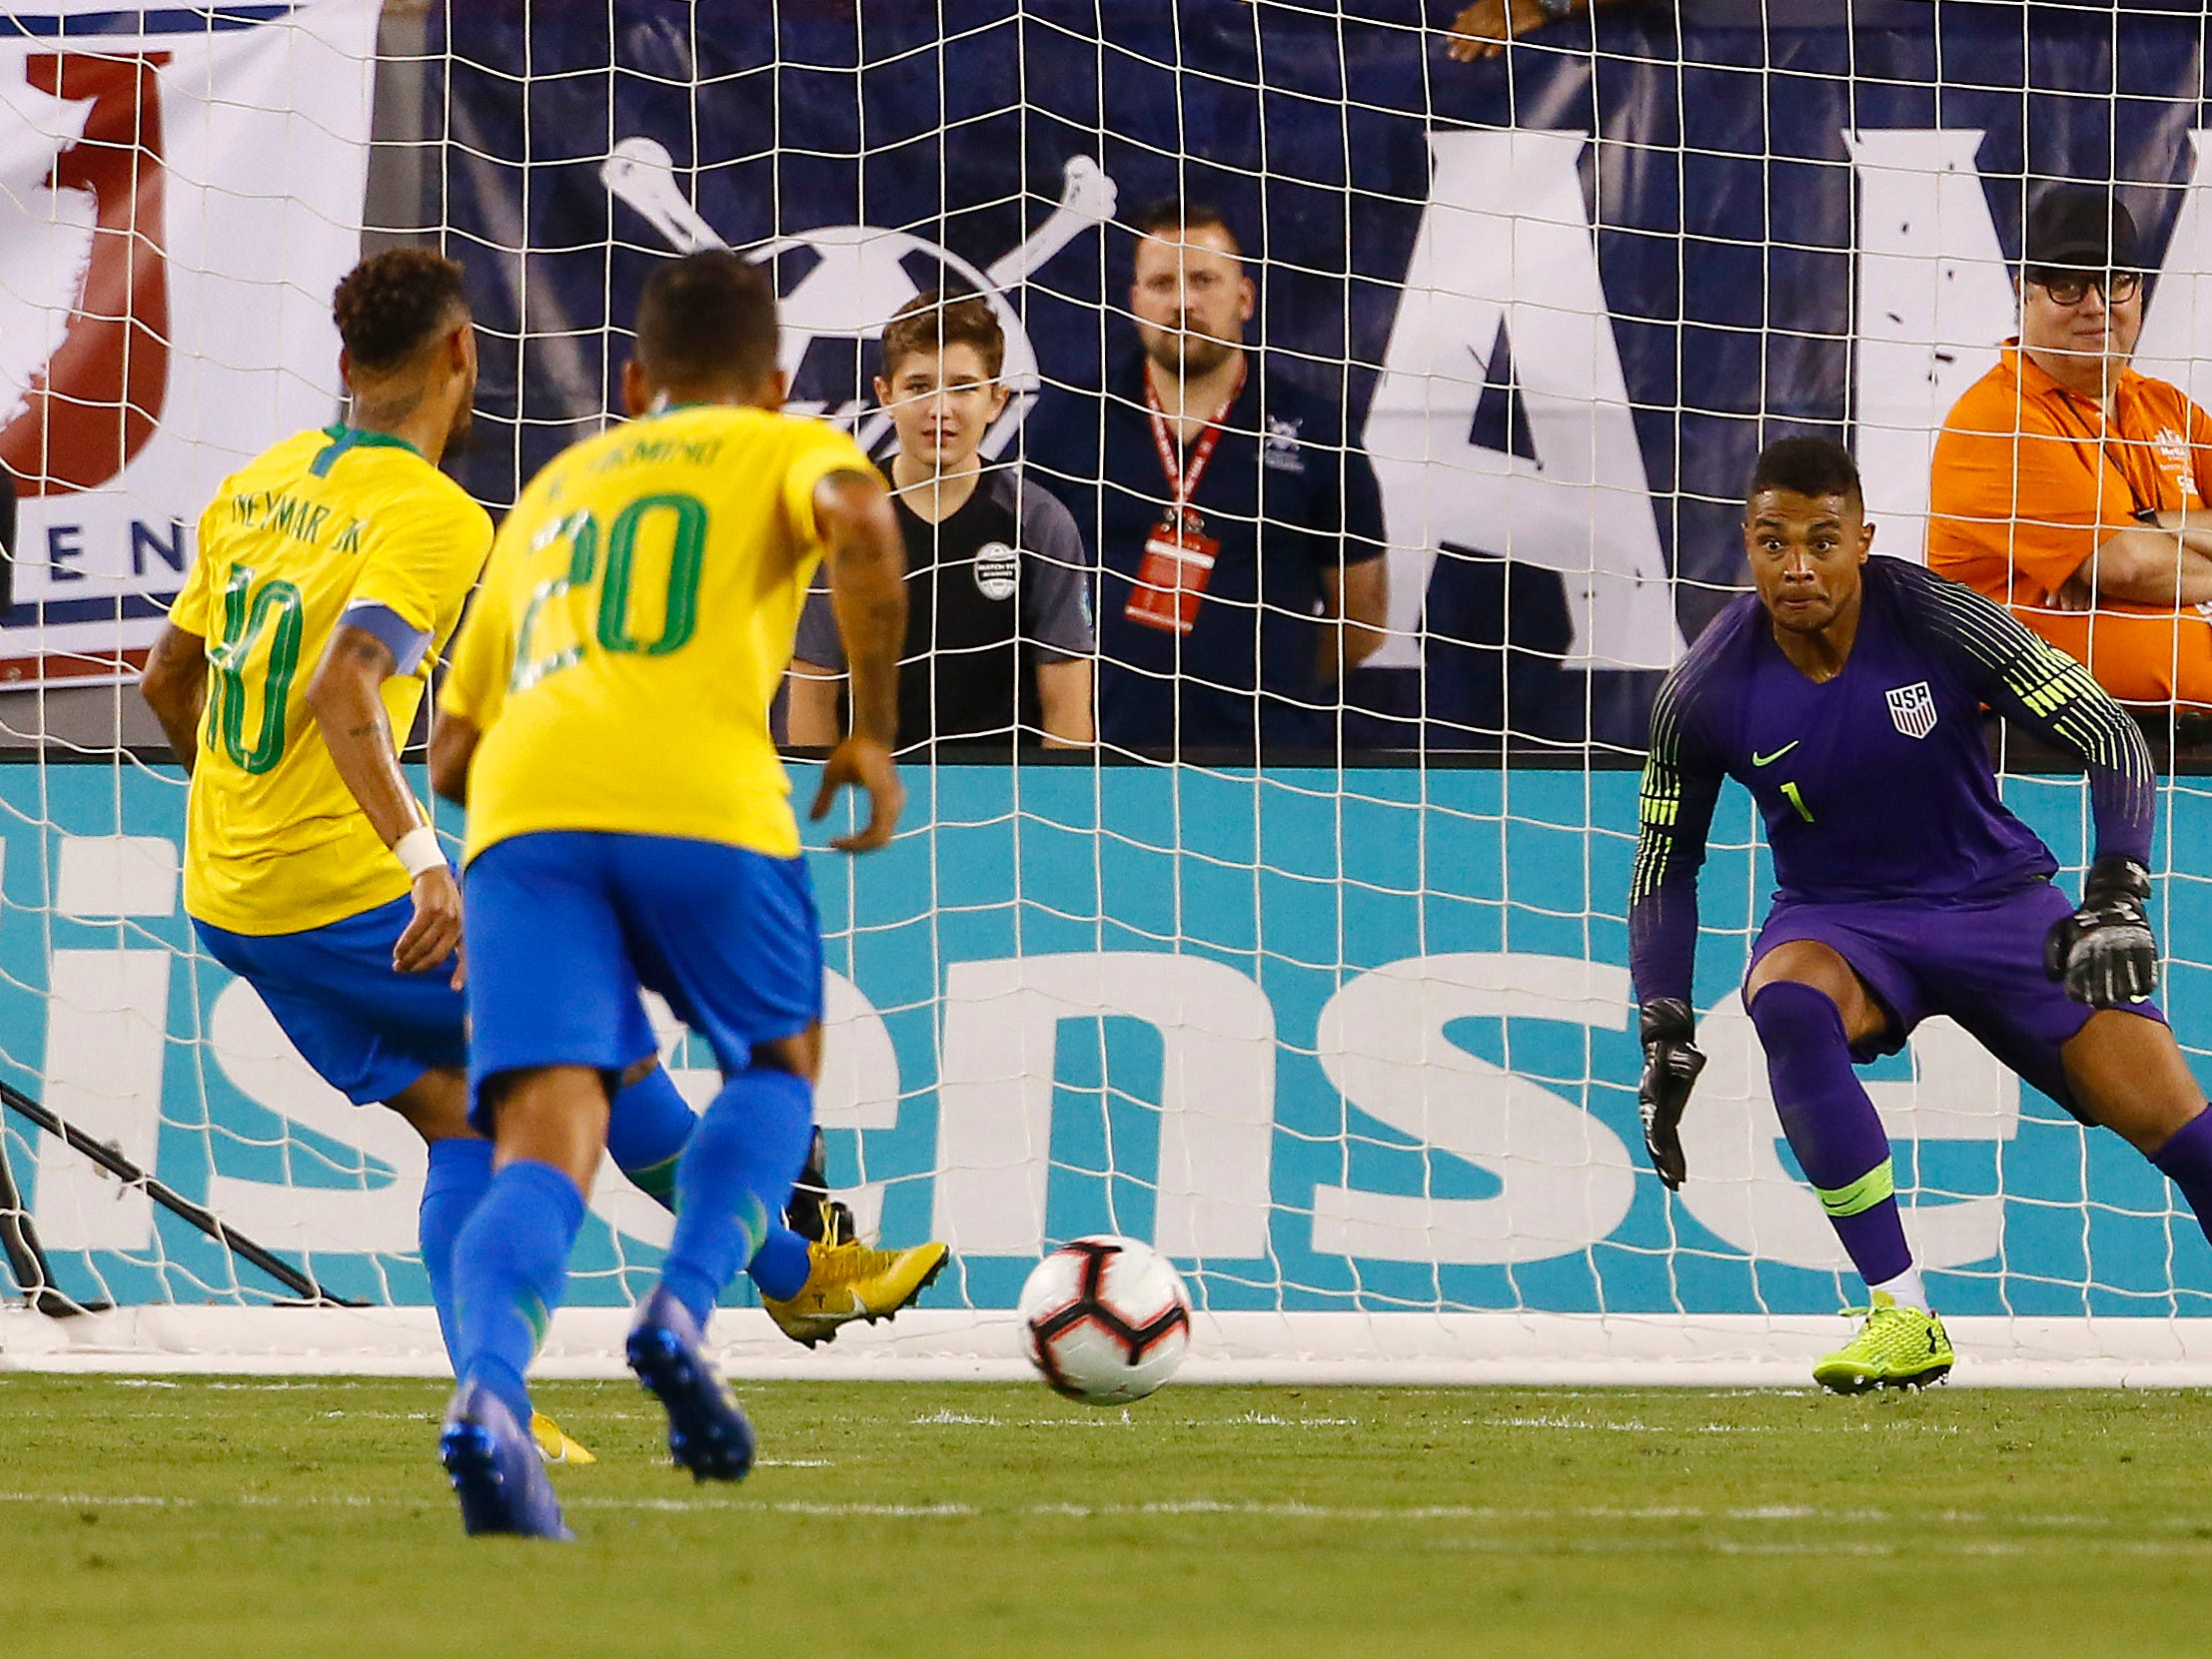 Brazil's Neymar puts in a PK vs. US Men's National team goalkeeper Zack Steffen during their international friendly at MetLife Stadium in East Rutherford, N.J. The US was defeated 2-0 by the five-time World Cup champions. September 7, 2018, East Rutherford, NJ